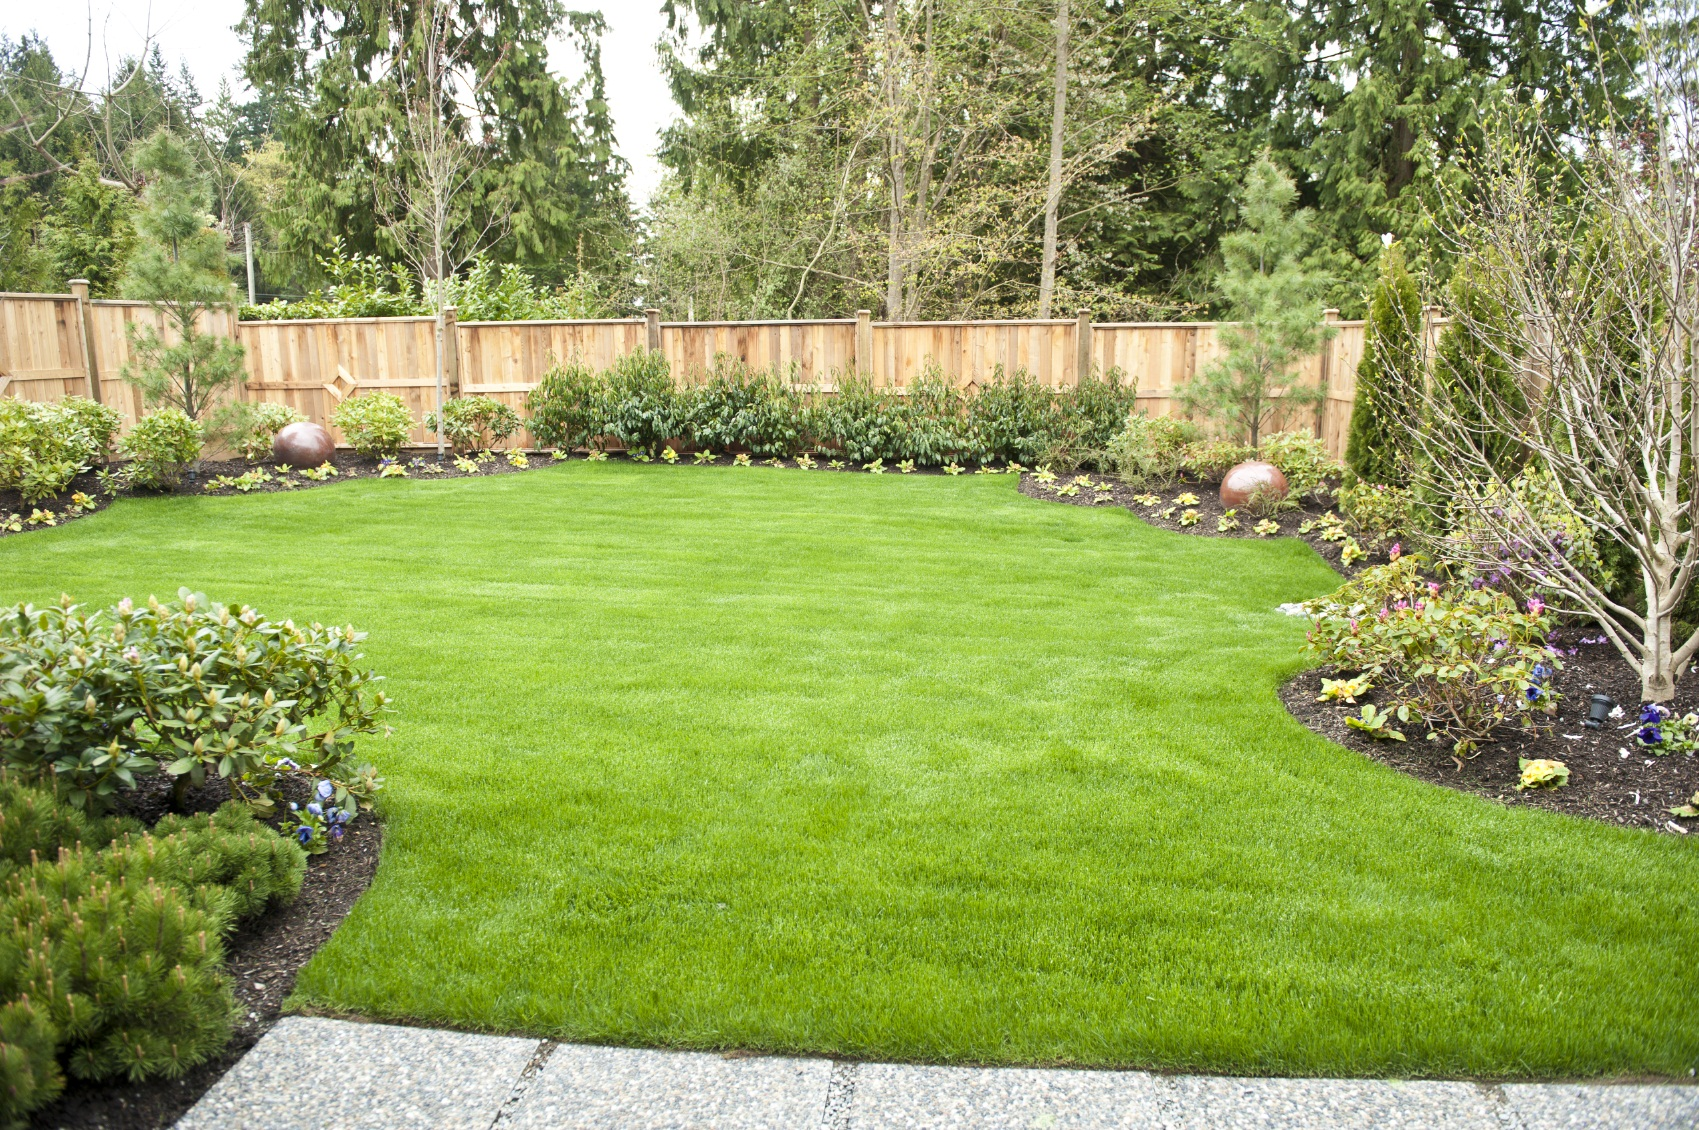 Backyard landscaping tips metamorphosis landscape design for Great landscaping ideas backyard